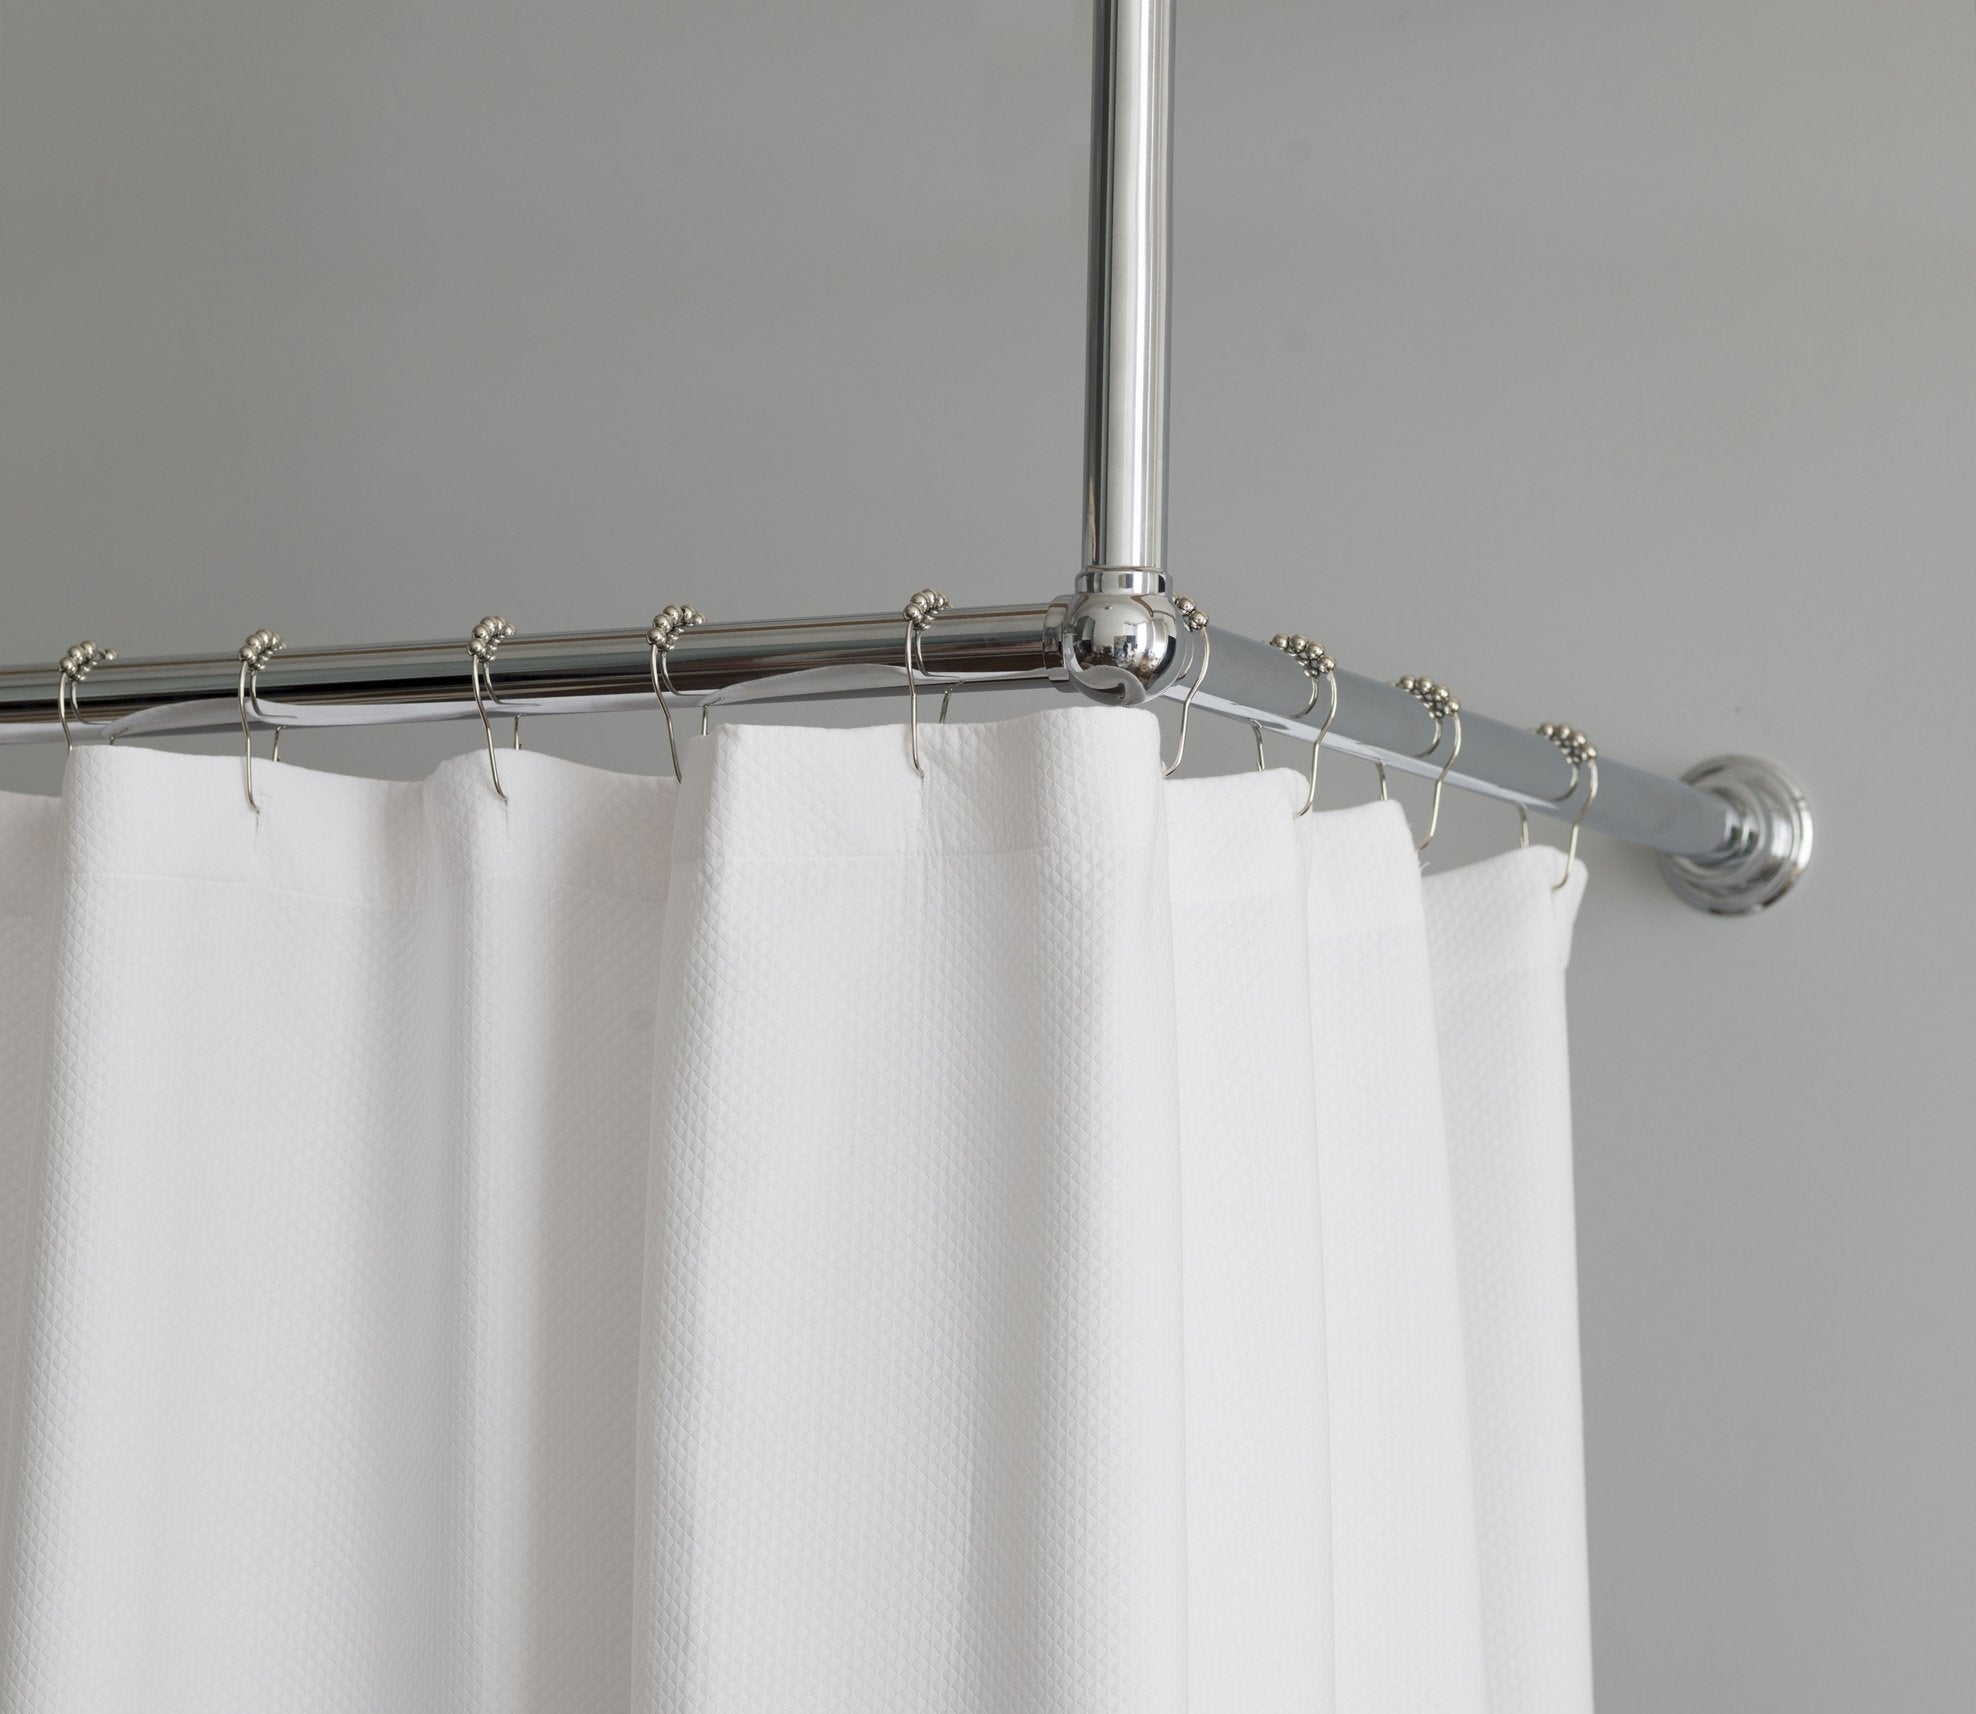 Shower Curtain Rail L Shape Rail